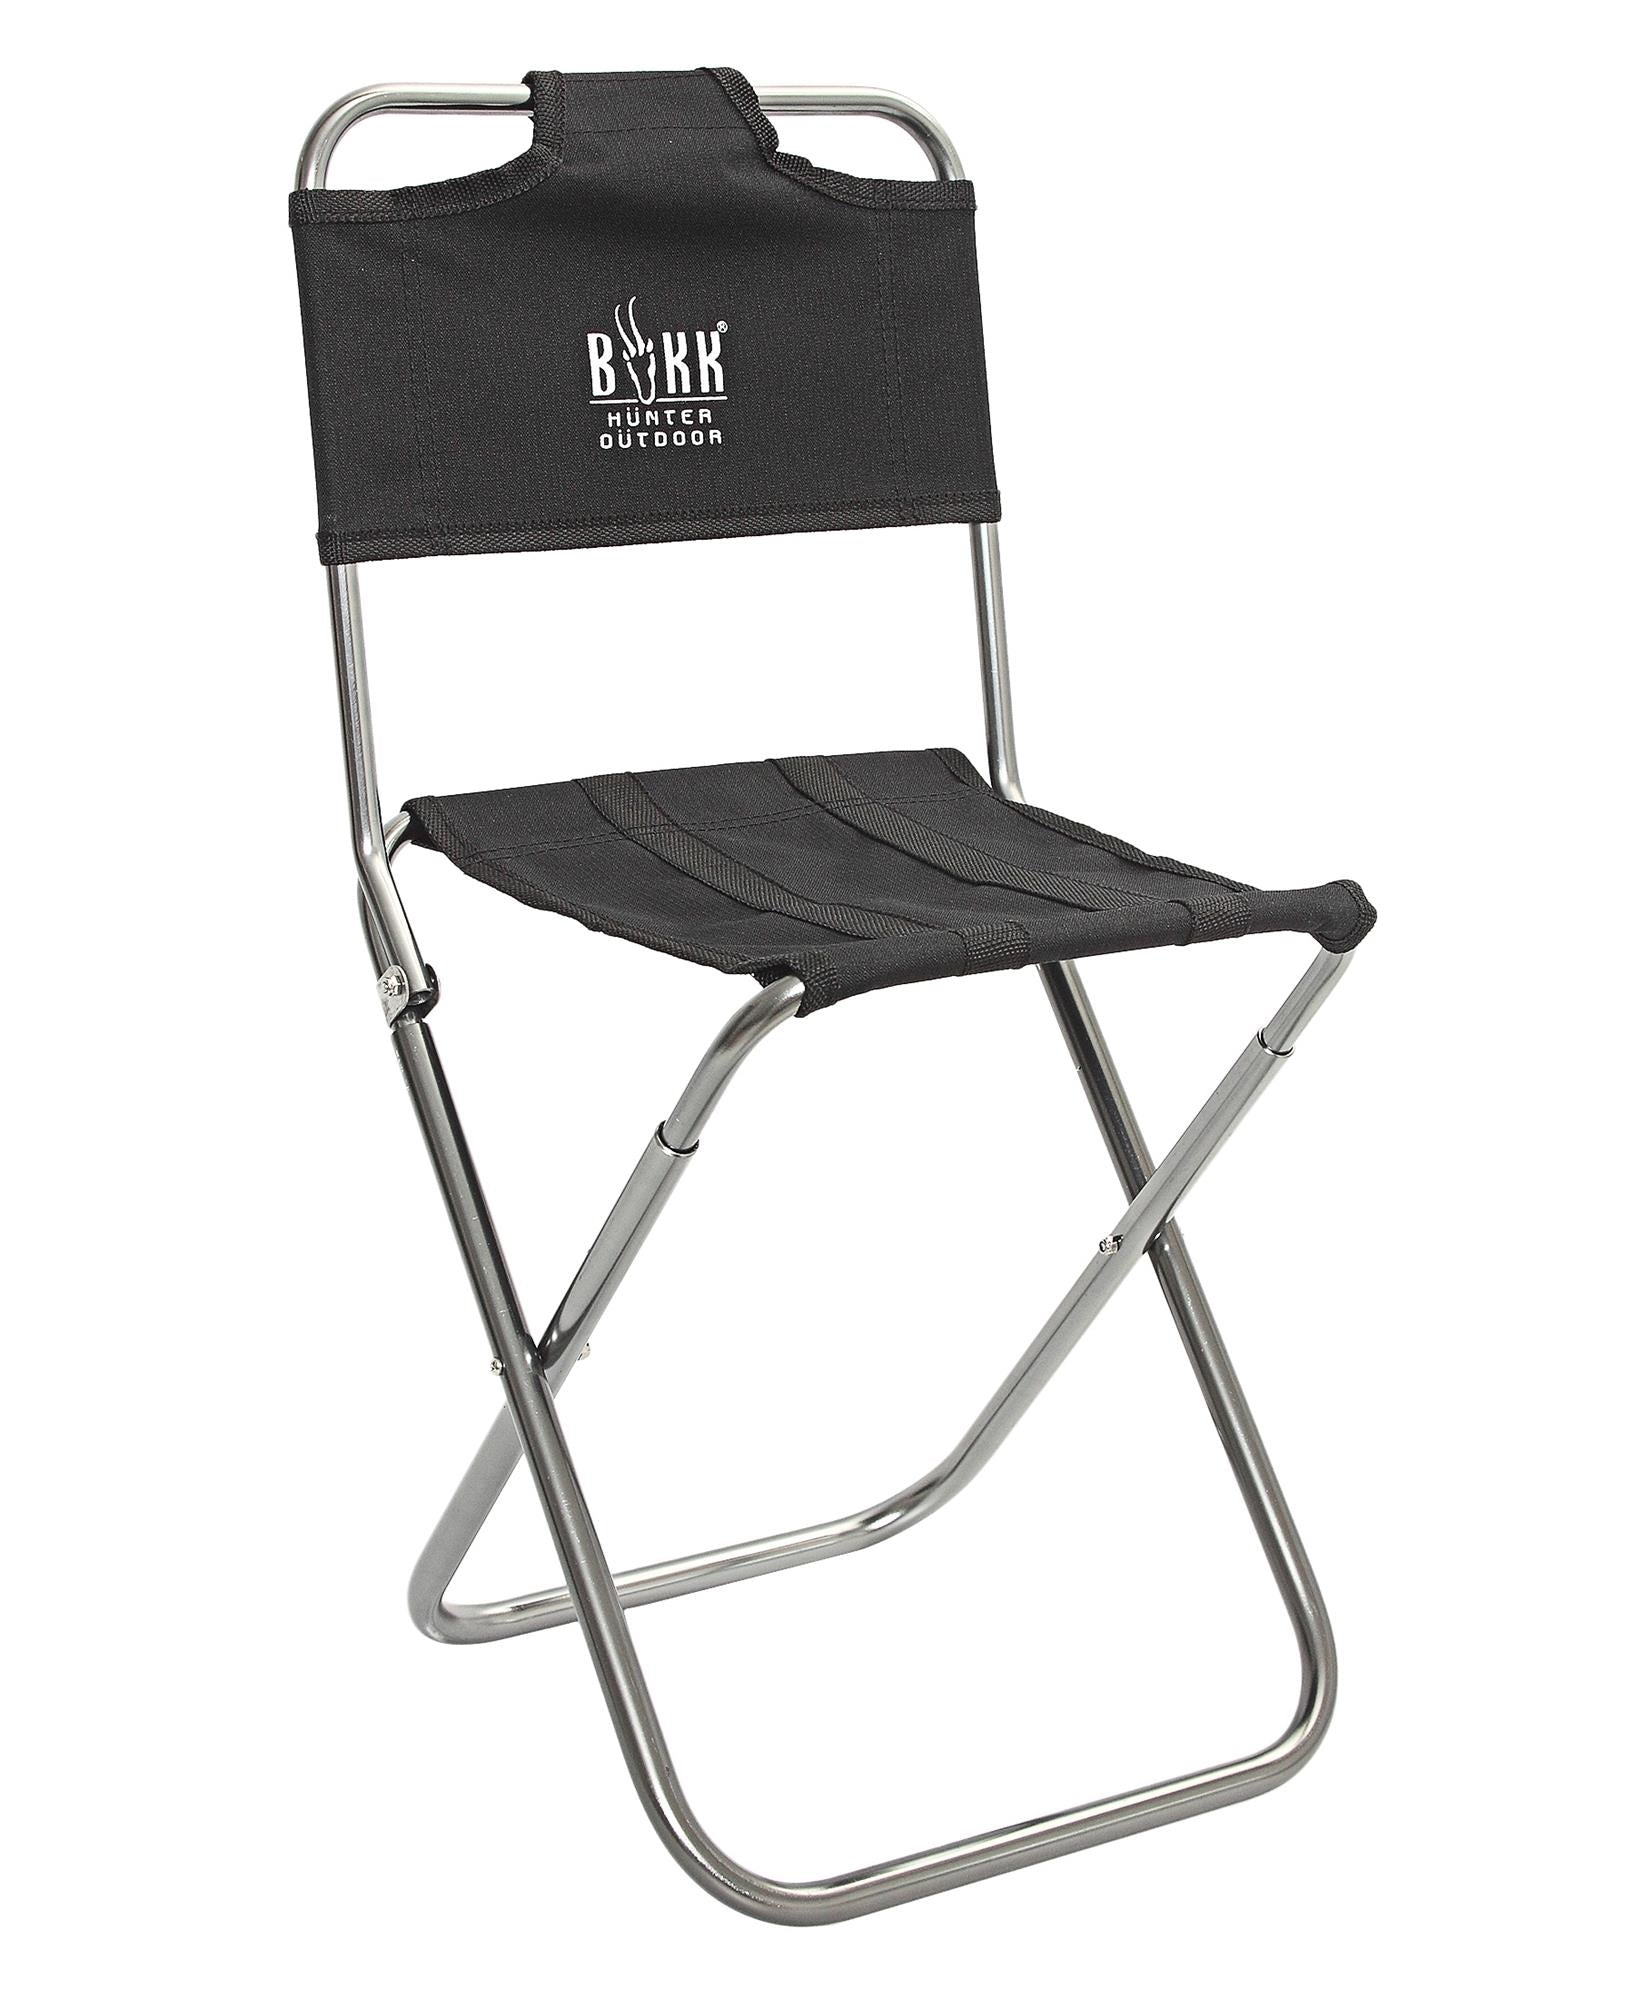 Mini Foldable Camping Chair - Black